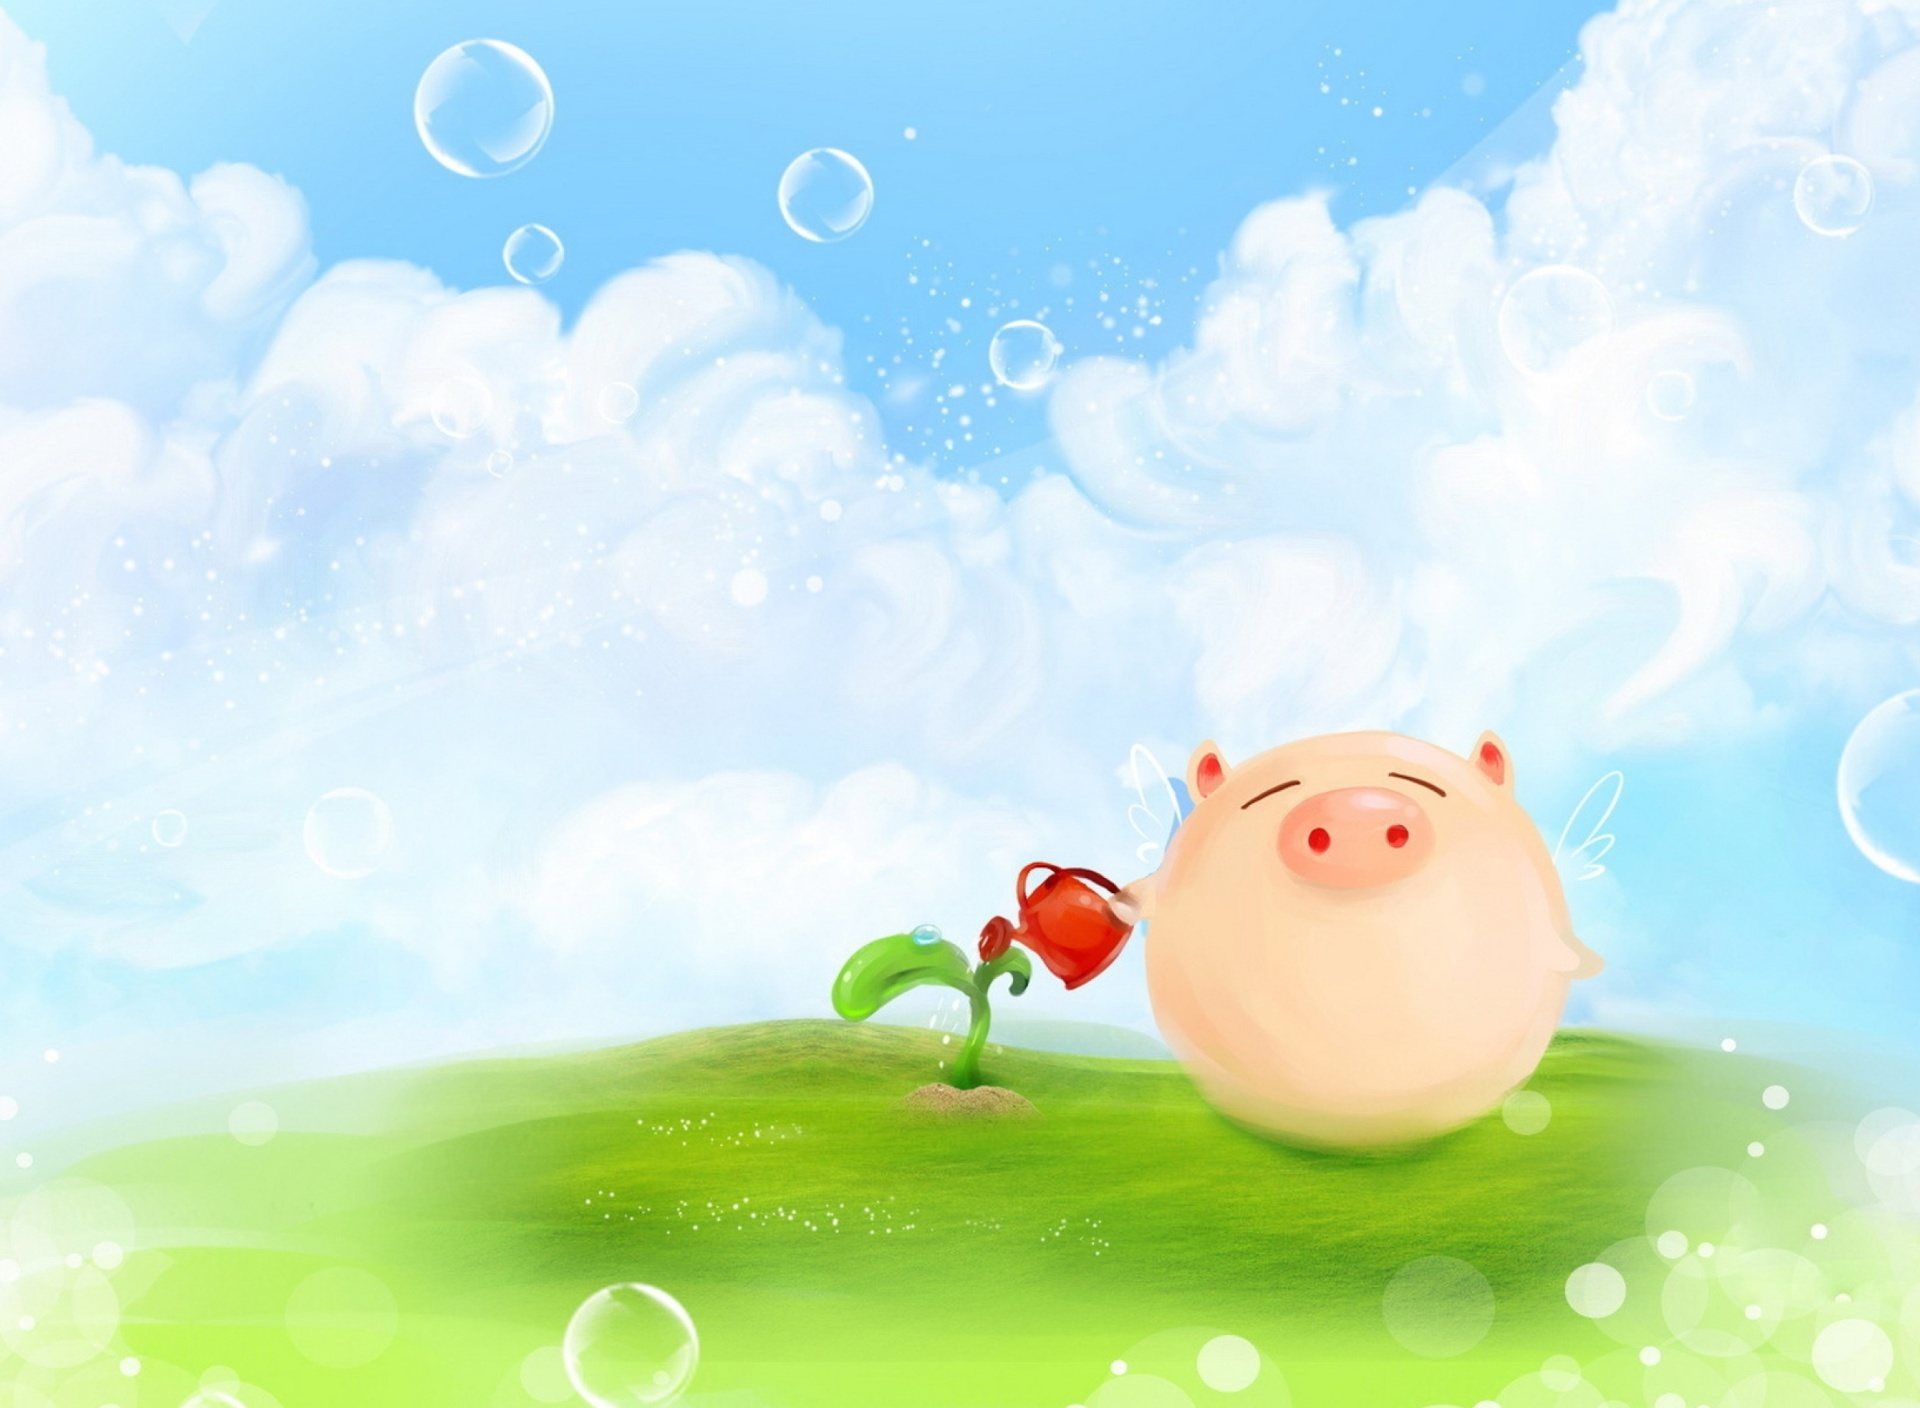 Pig Artwork wallpaper 1920x1408